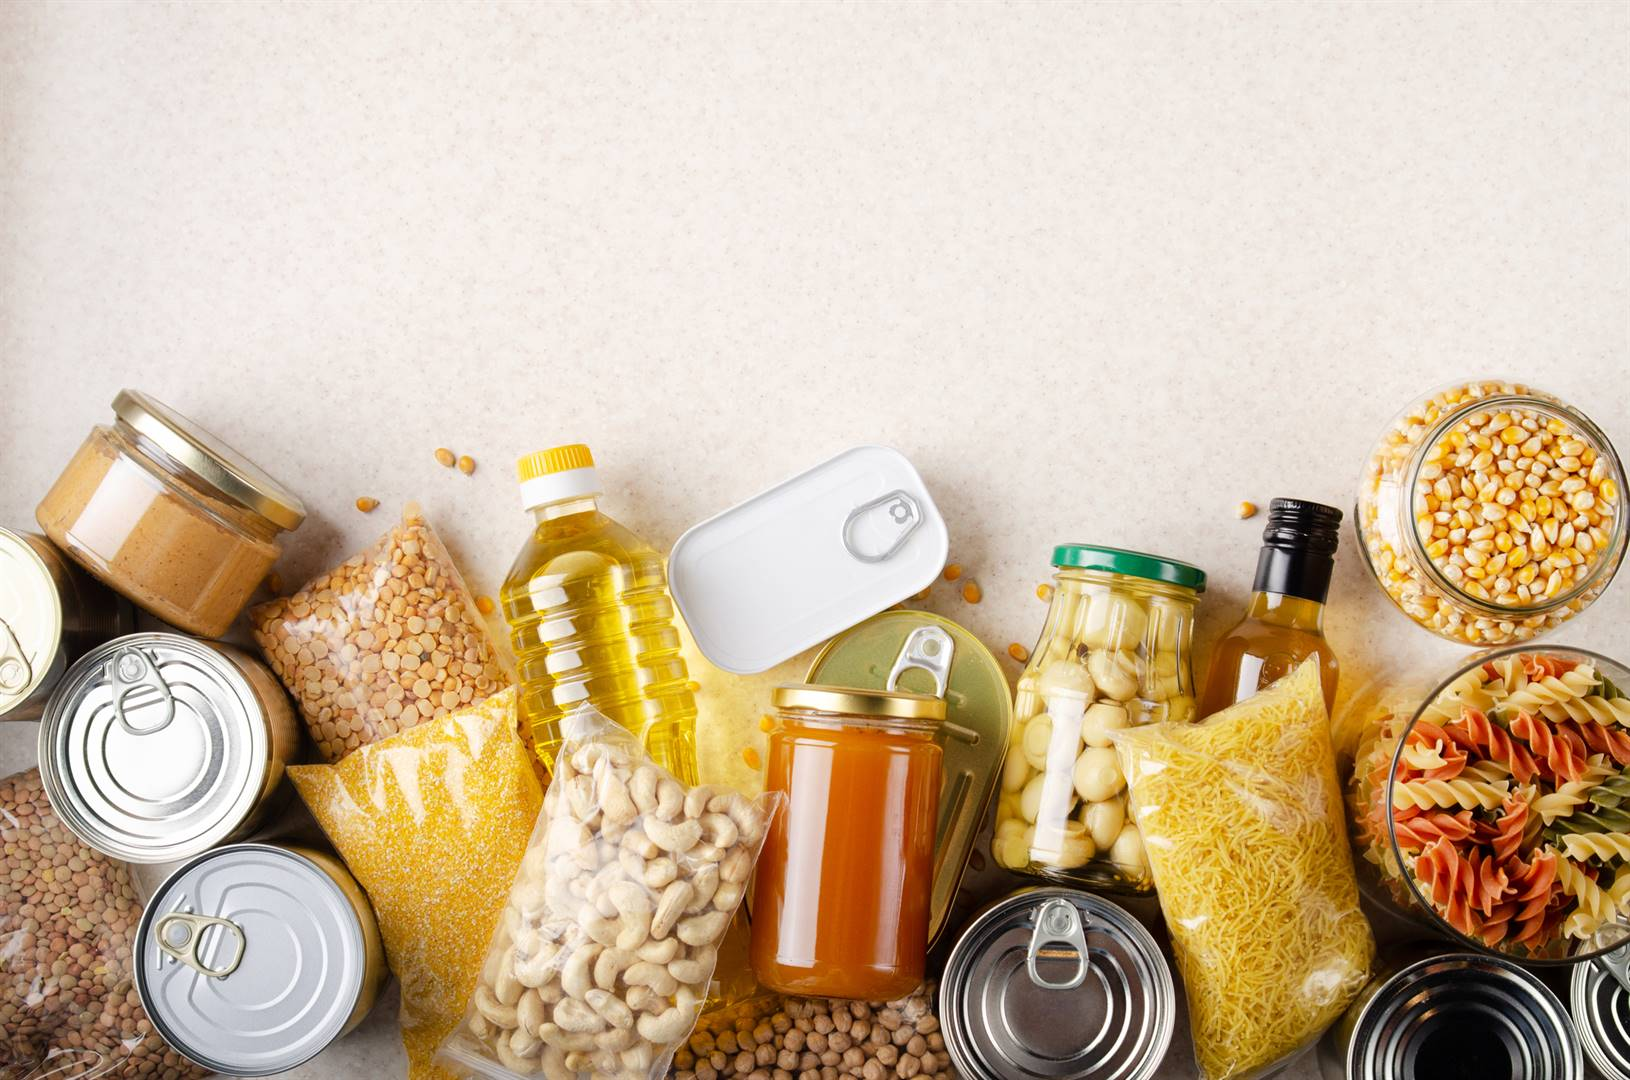 Food prices have posted a 10% rise since last year, as Covid-19 wreaked havoc on supply chains. Photo: iStock